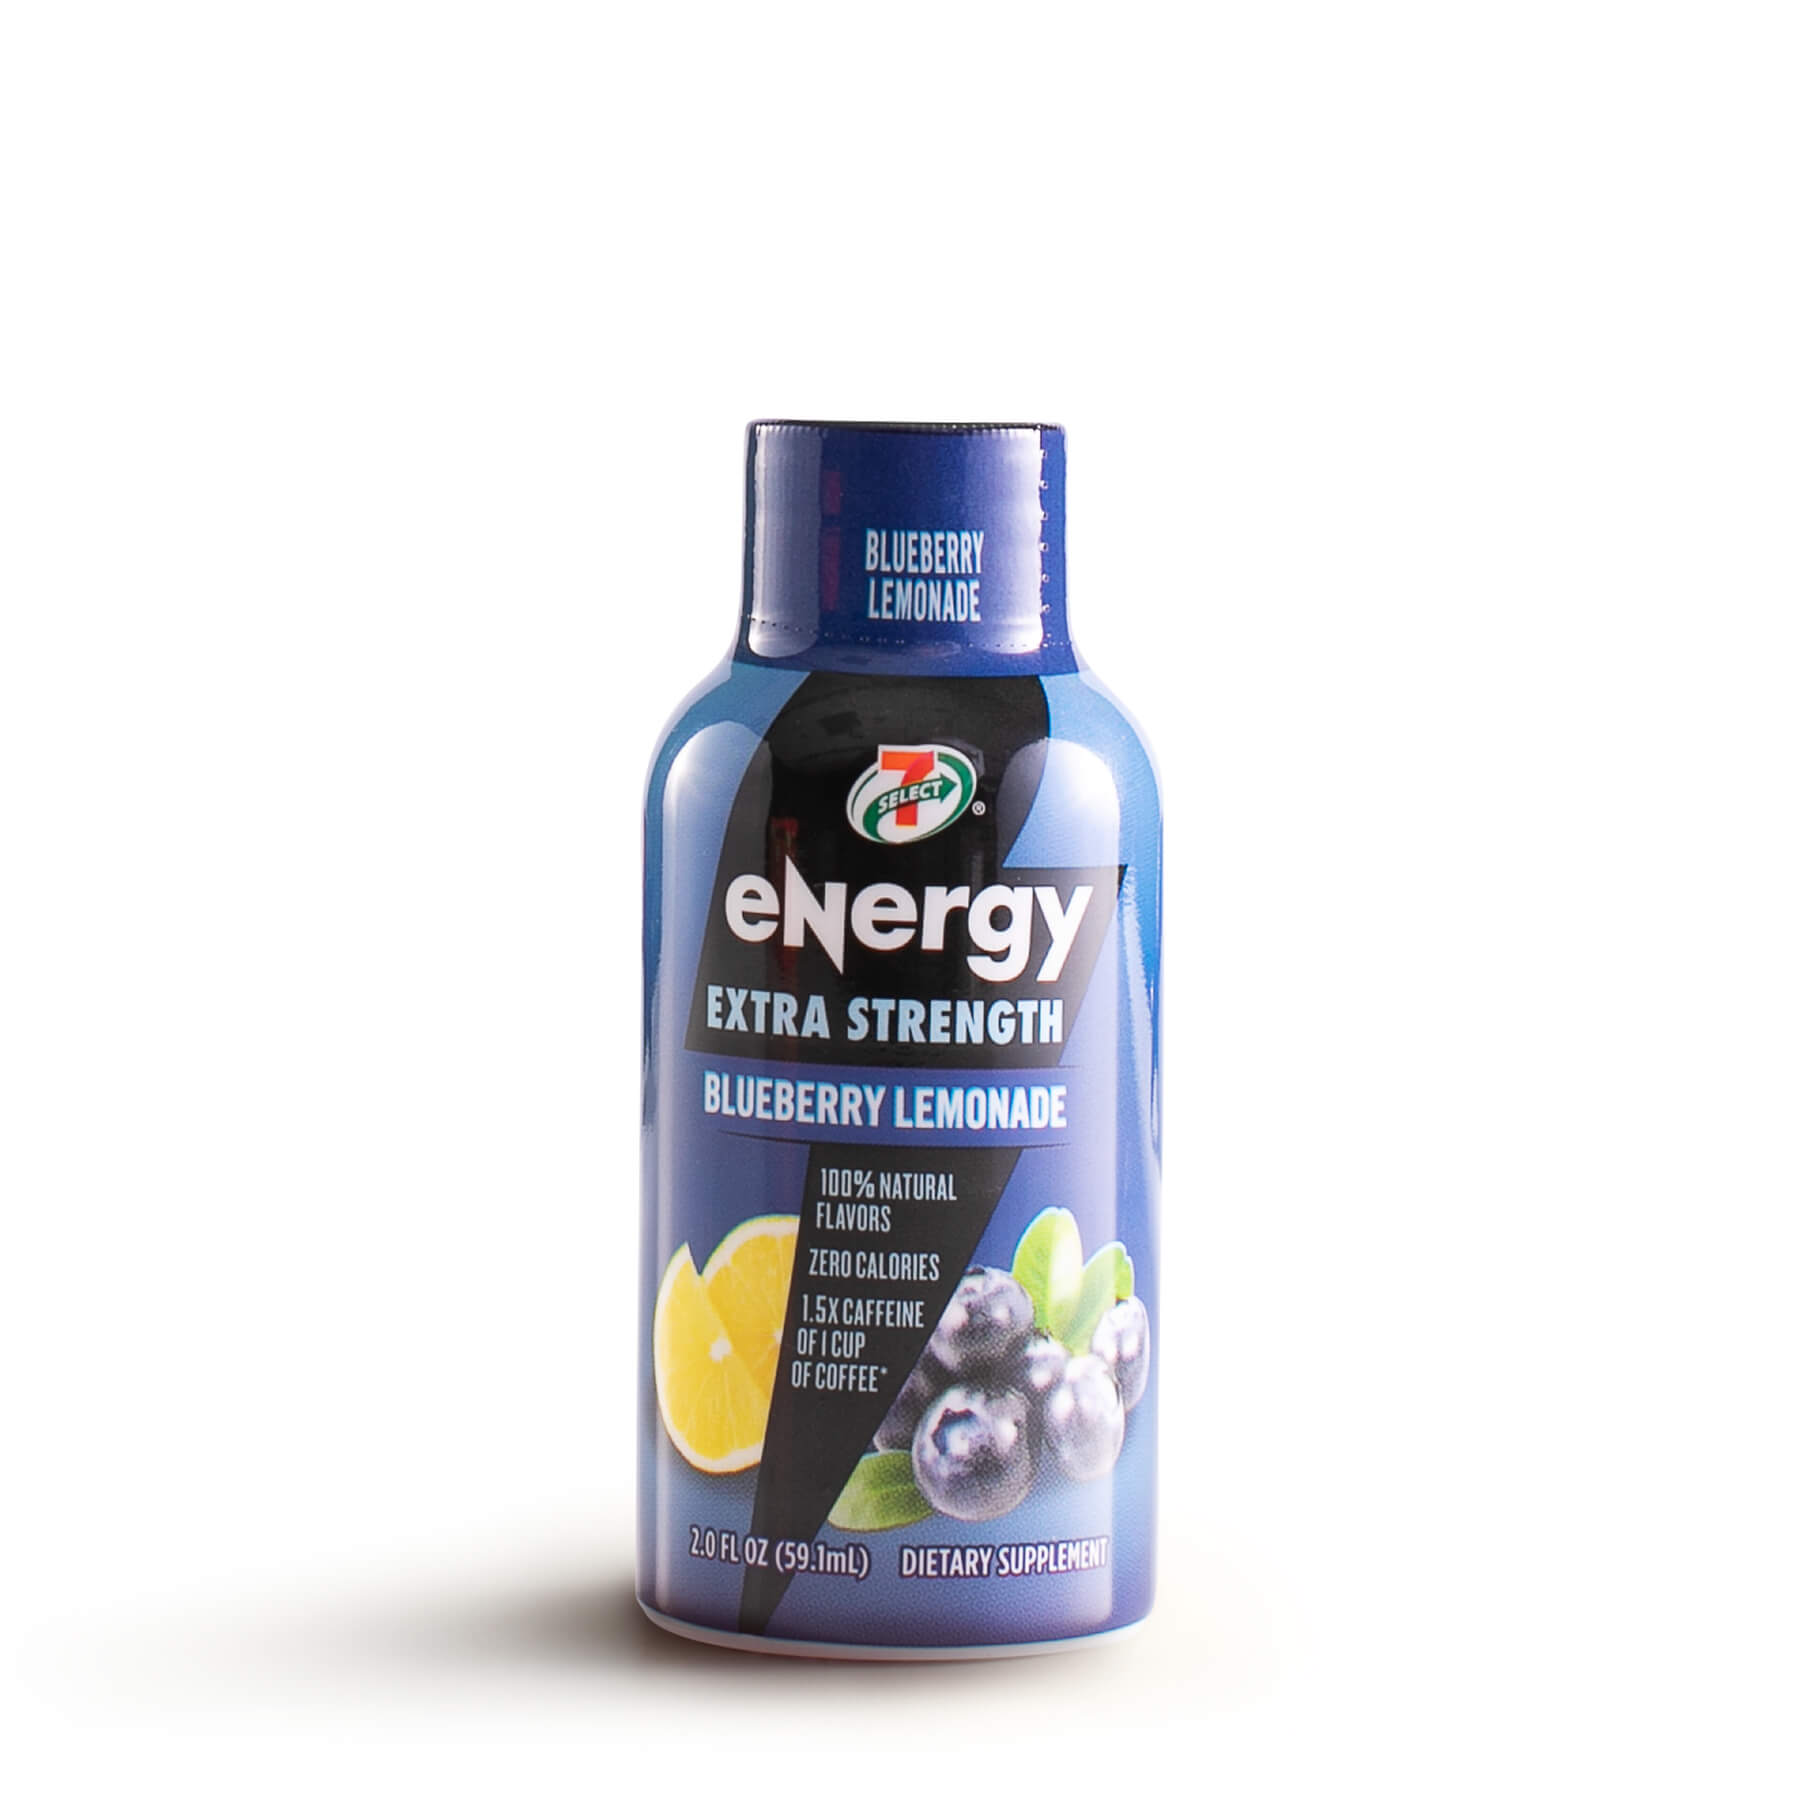 A single 7-select extra strength energy shot in blueberry lemonade flavor.